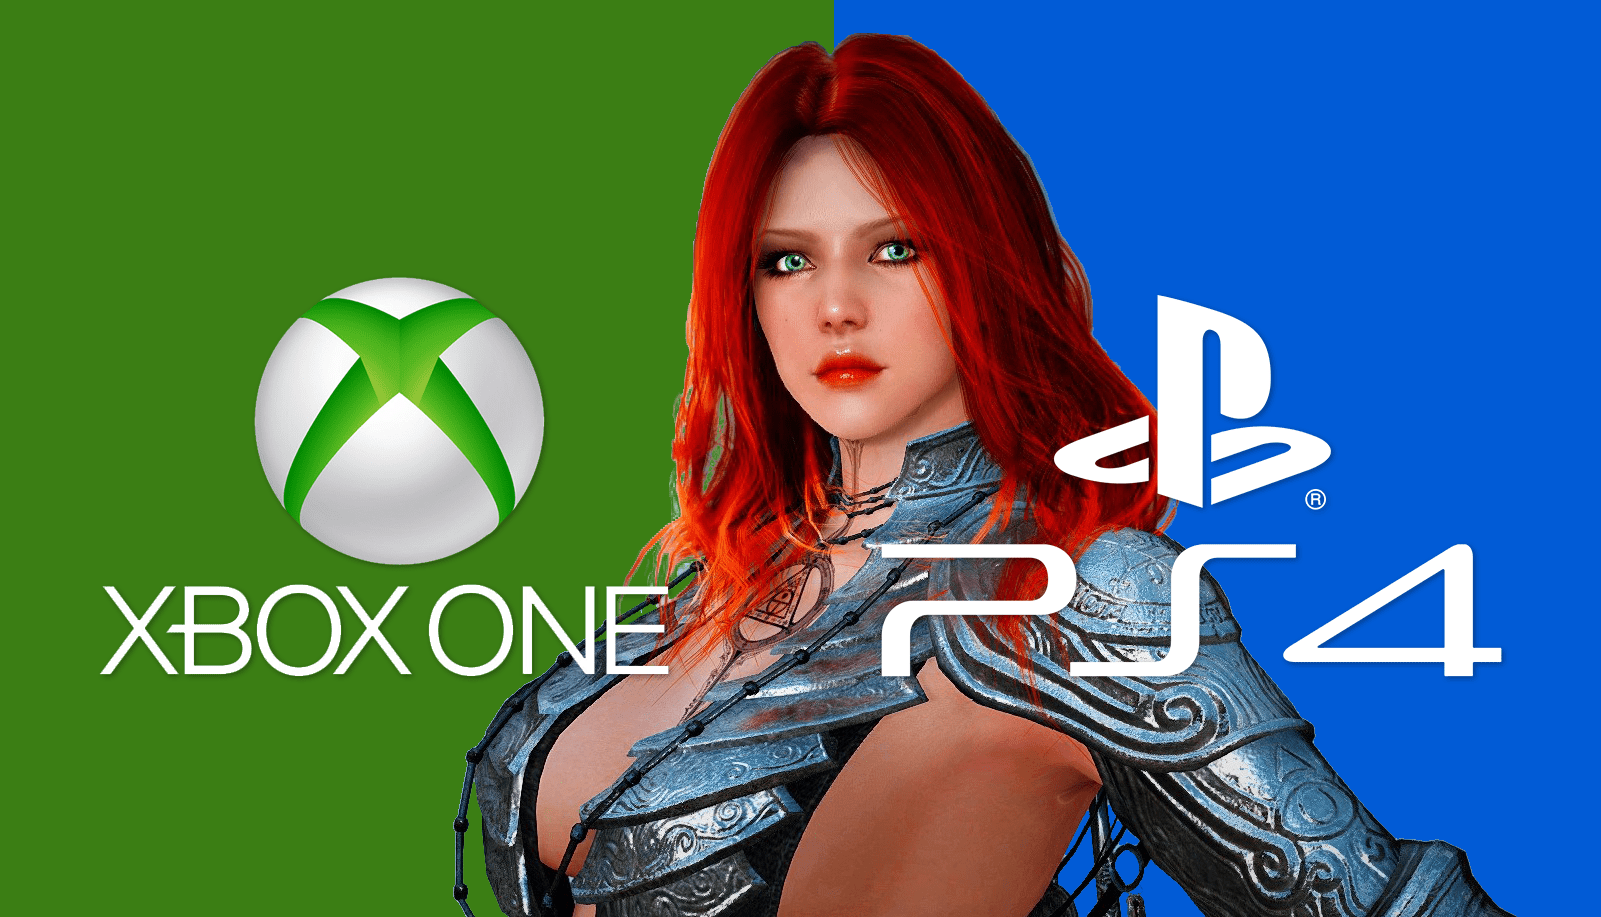 Black Desert Online Deserves PS4 And Xbox One Ports With Cross Network Gameplay